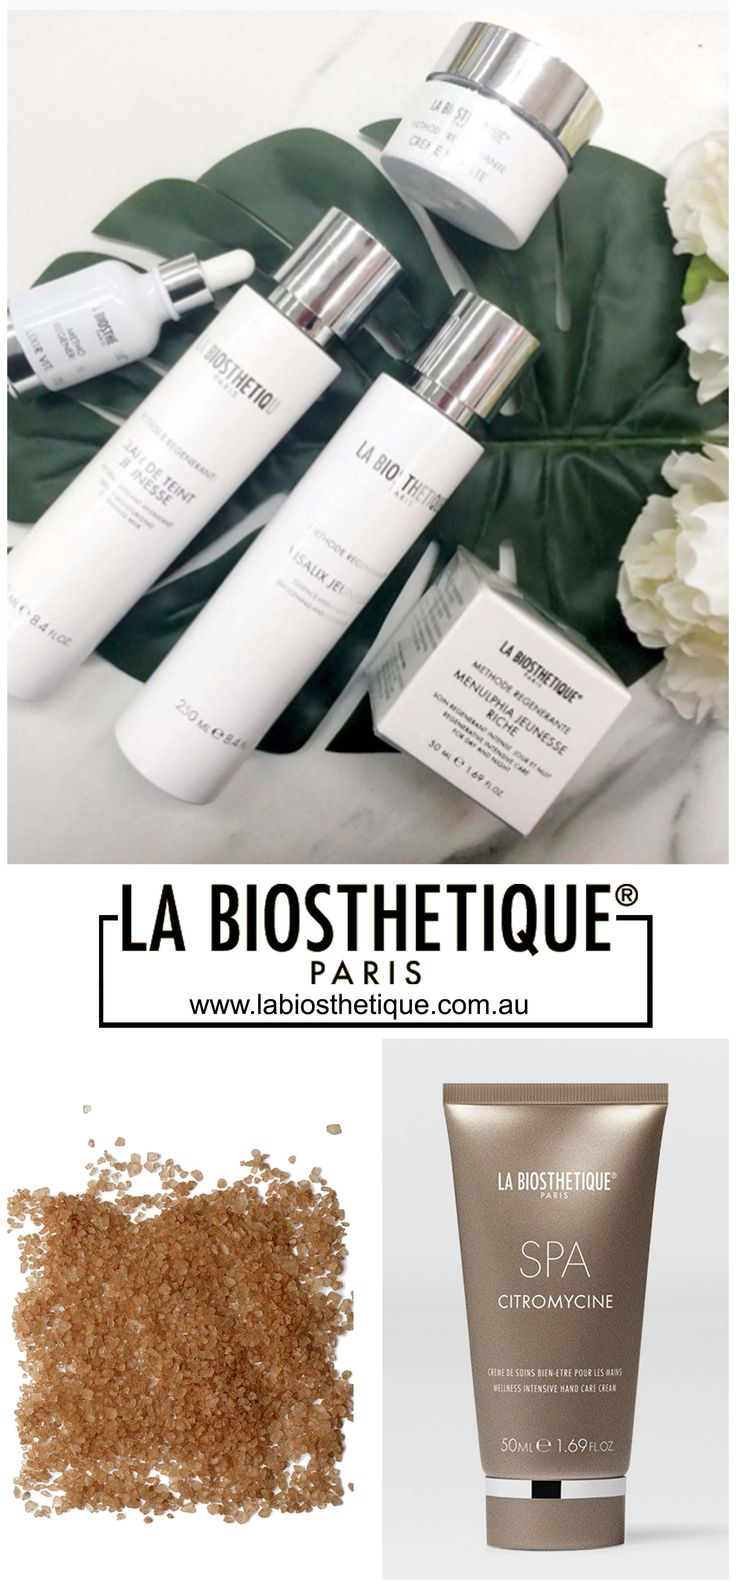 For silky soft skin: Spa Citromycine, the sensuously scented hand cream – specially created for LA BIOSTHETIQUE by the master of scent essences, Geza Schön. │Skin care tips │Body care │Skin Care │Beauty Tips │Beauty Secrets │Skin Care Products │Natural Skin Care │Products  #Skincaretips #Skincare #Bodycare #Beautytips #Beautysecrets #Organicskincare #Skincareproducts #Naturalskincare #Products